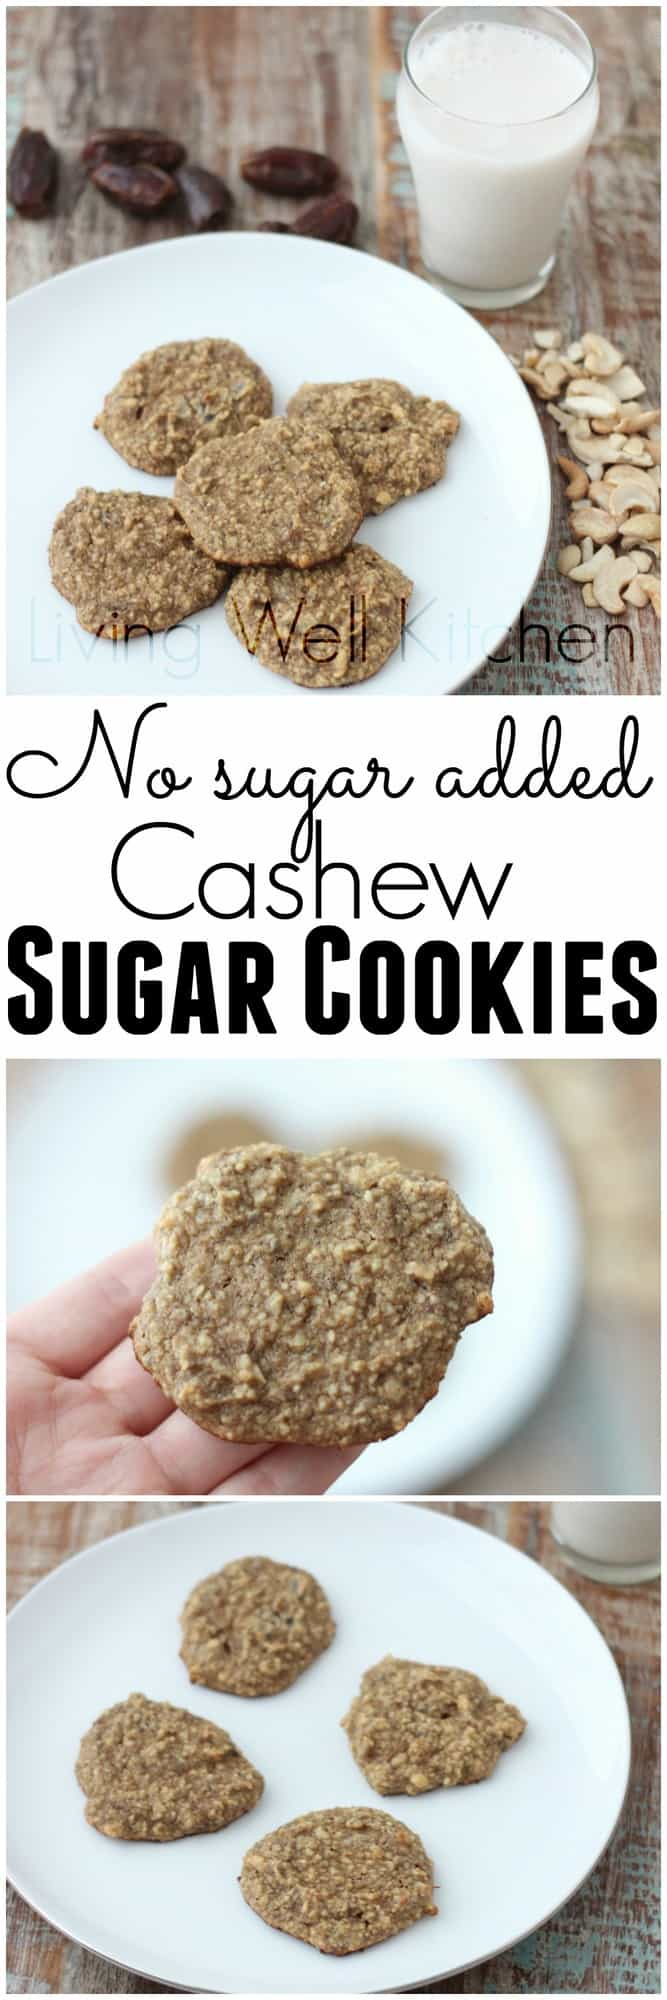 Sugar cookies that have no added sugar, no gluten, and no butter. Nourishing cookies you can enjoy for dessert, snack, or breakfast! No Sugar Added Cashew Sugar Cookies from Living Well Kitchen @memeinge